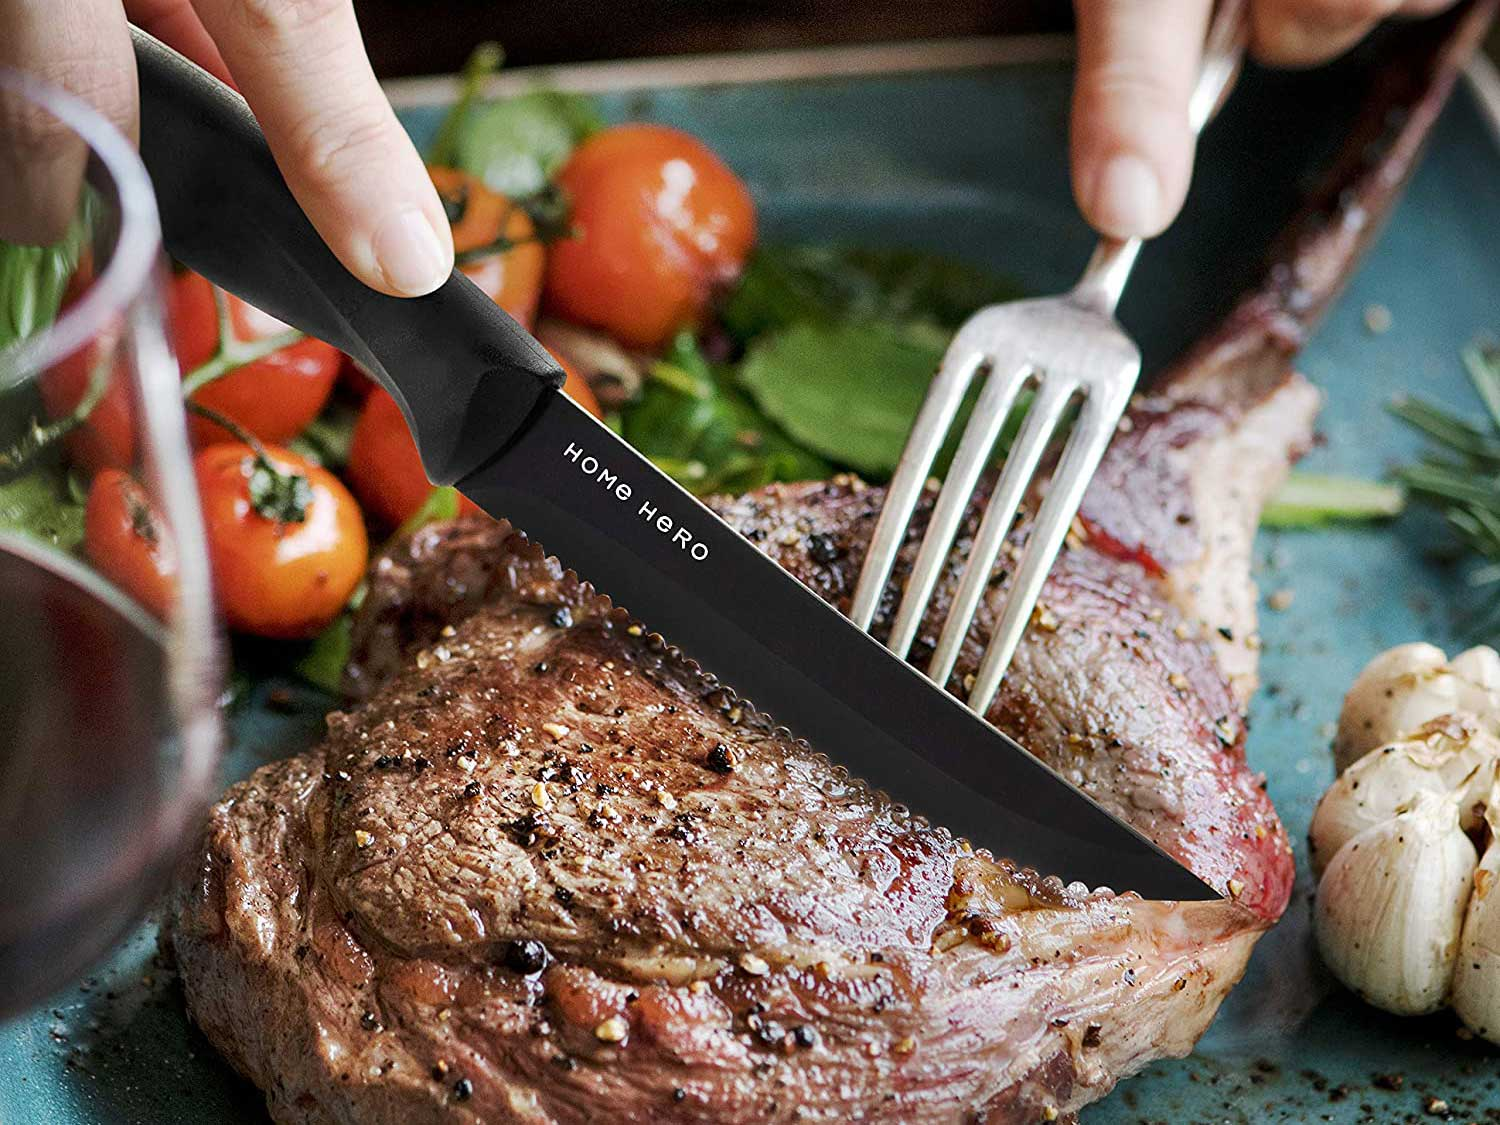 Person cuts steak with serrated steak knife